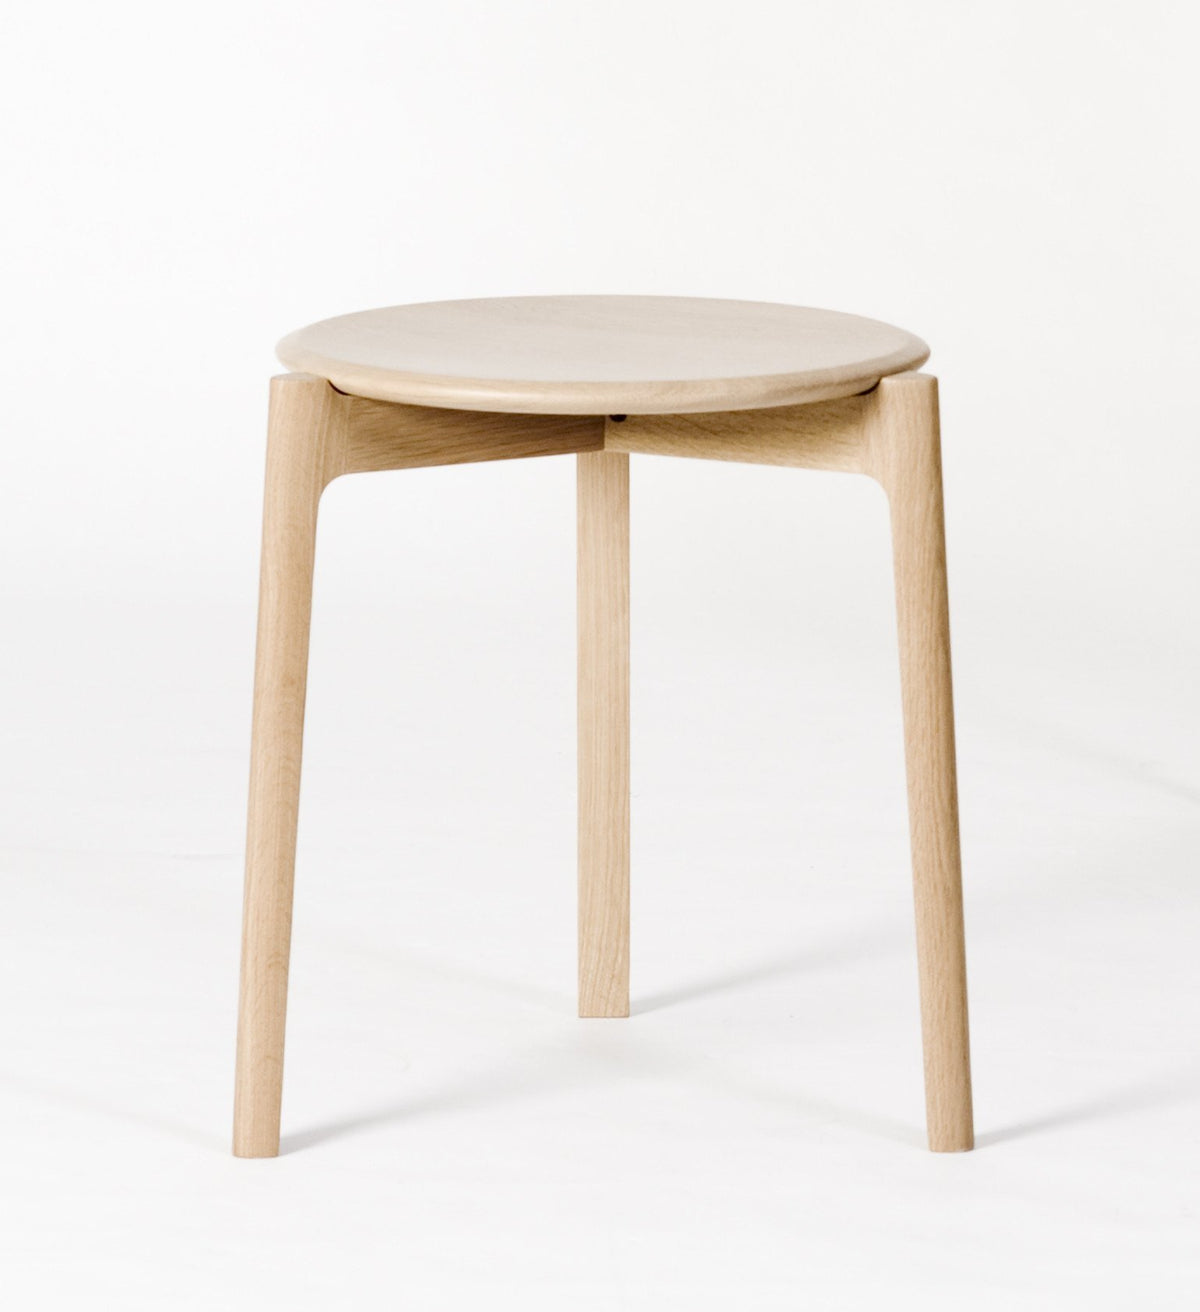 Svelto Low Stool-Ercol-Contract Furniture Store